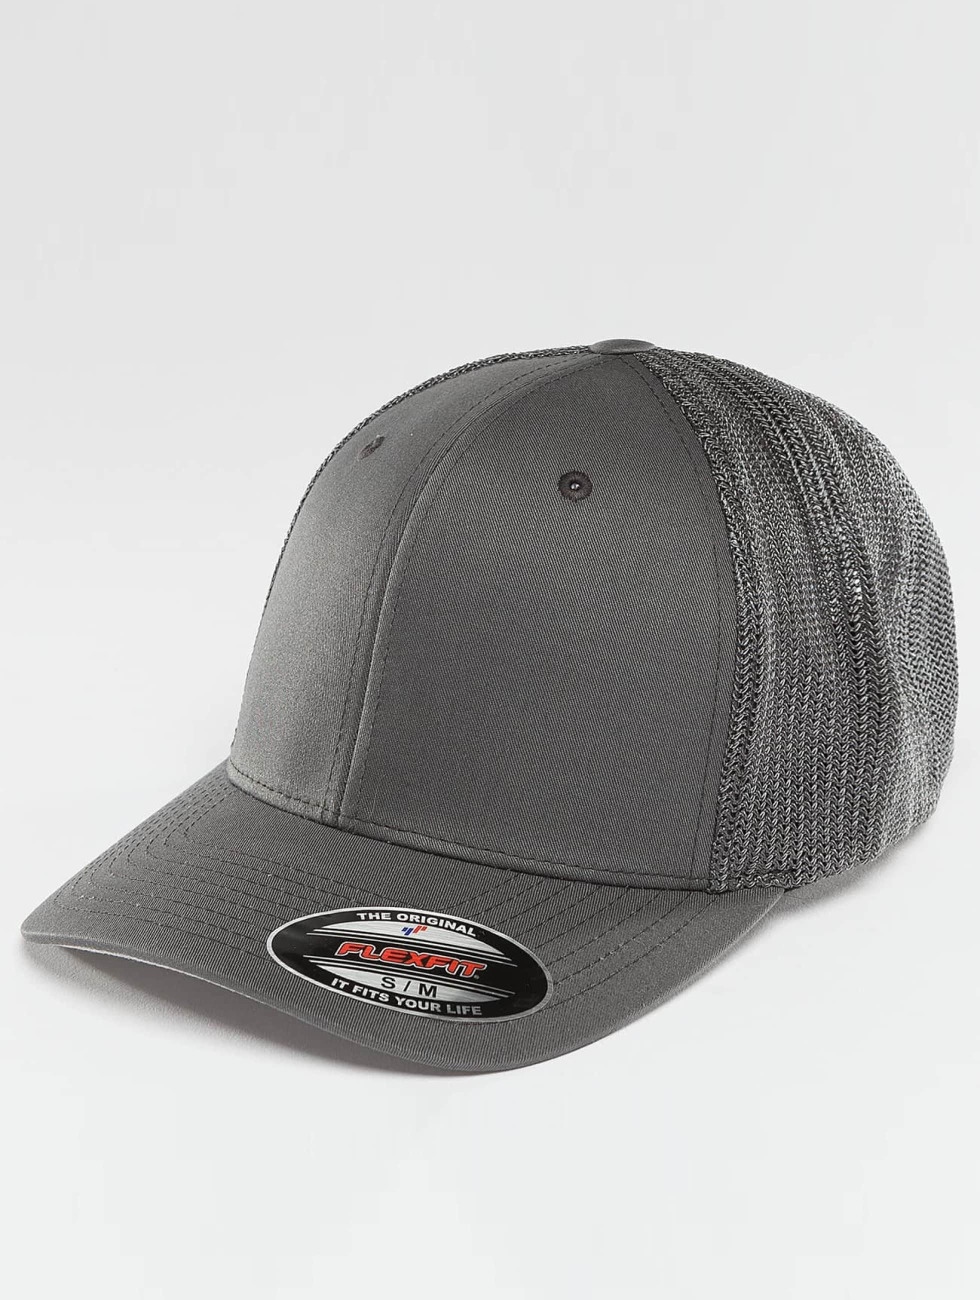 Flexfit Flexfitted Cap Mesh Cotton Twill grigio